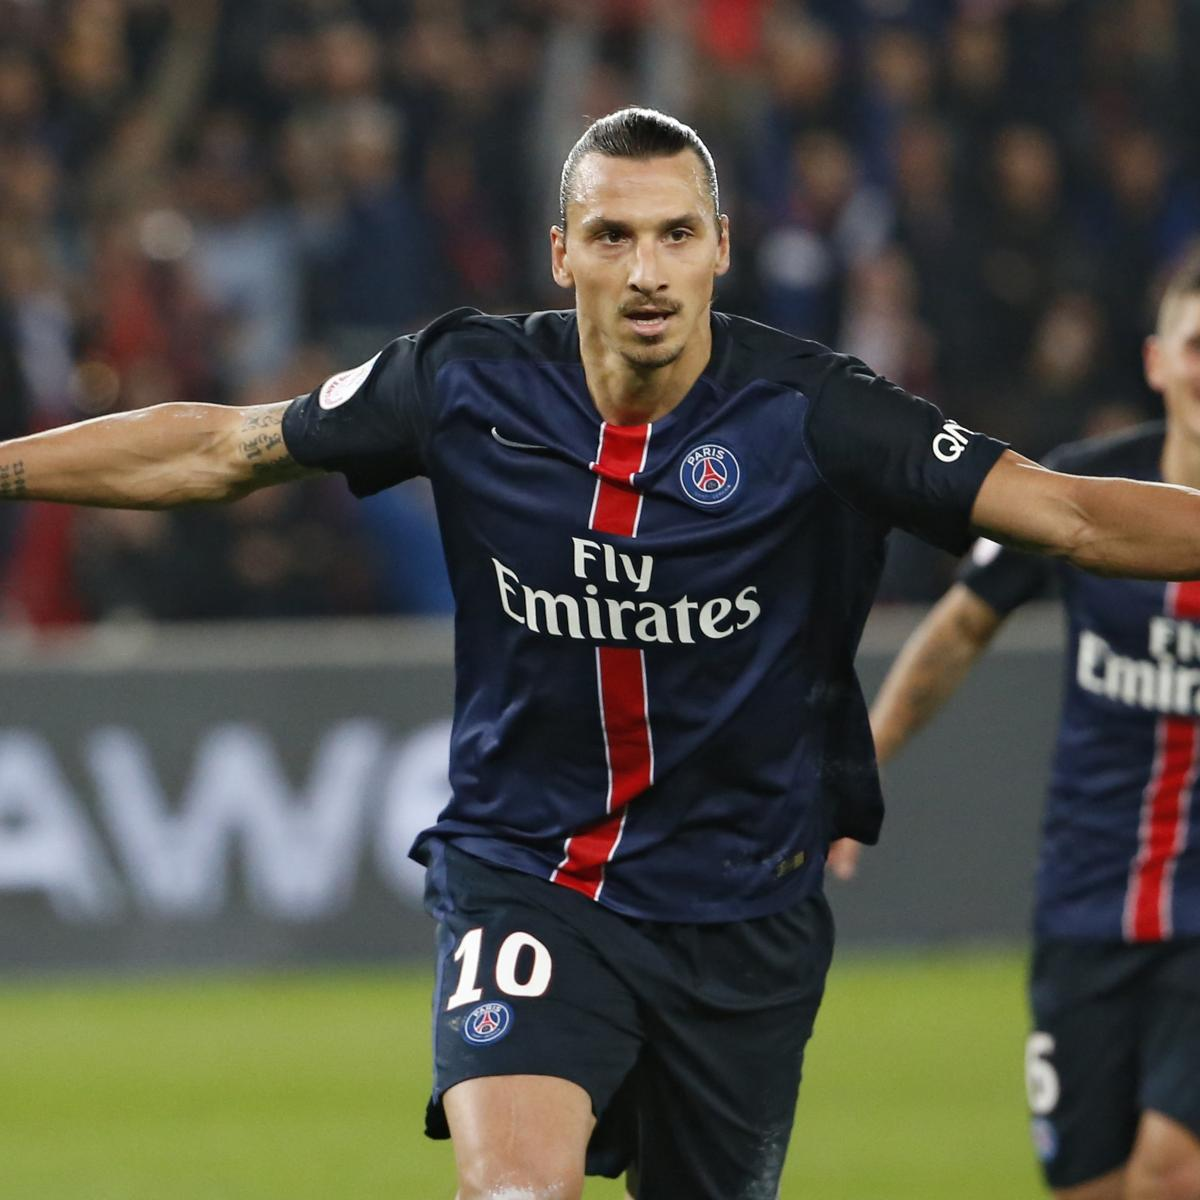 Bastia 0 3 Psg Match Report: Ranking PSG's Top 5 Players For October